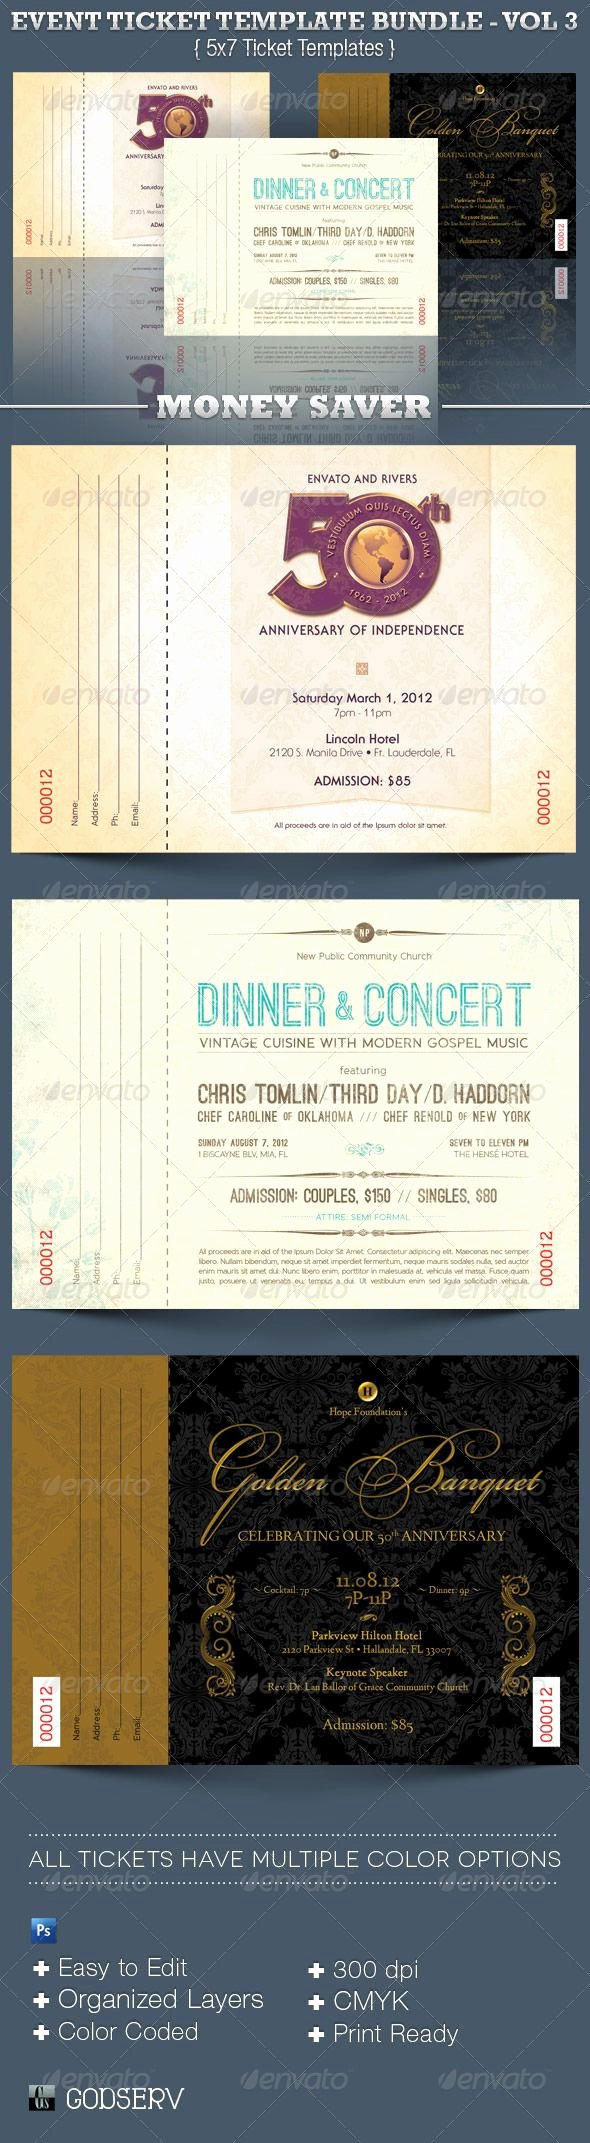 Event Ticket Template Photoshop Awesome event Ticket Template Bundle Volume 3